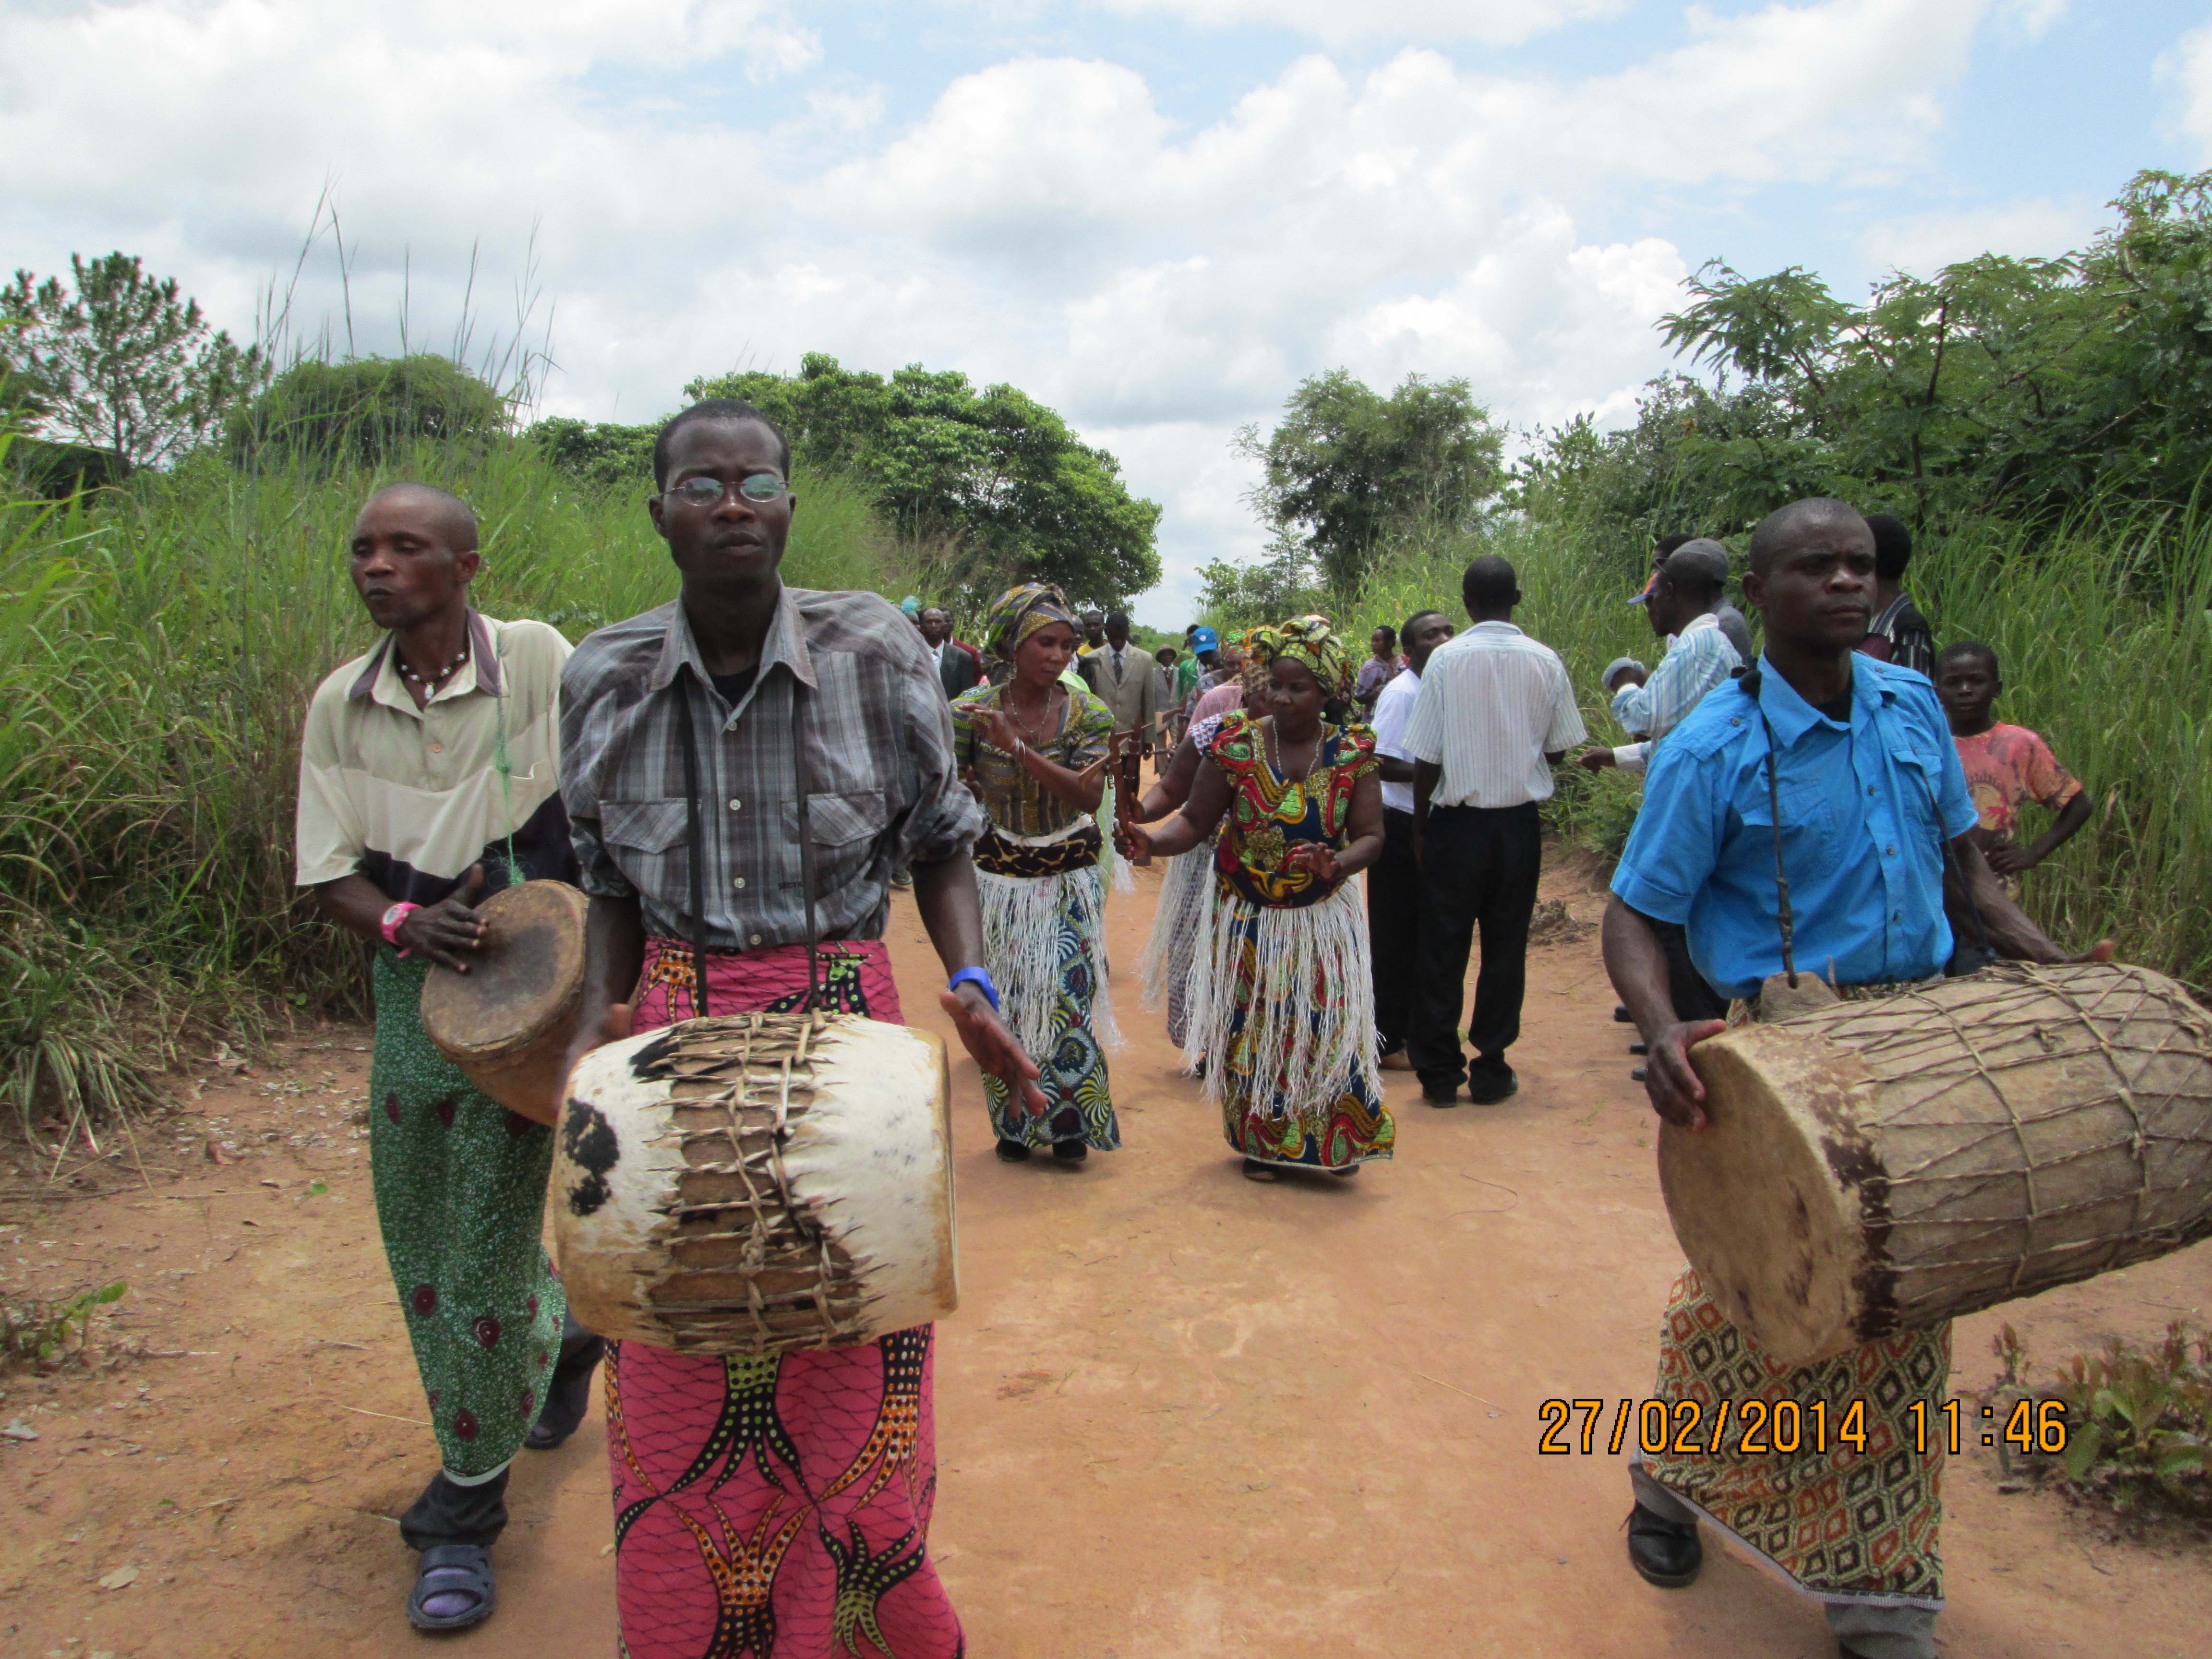 img 0096 Bemba People: Matrilineal, Agrarian And The Largest Ethnic Group In The Zambia